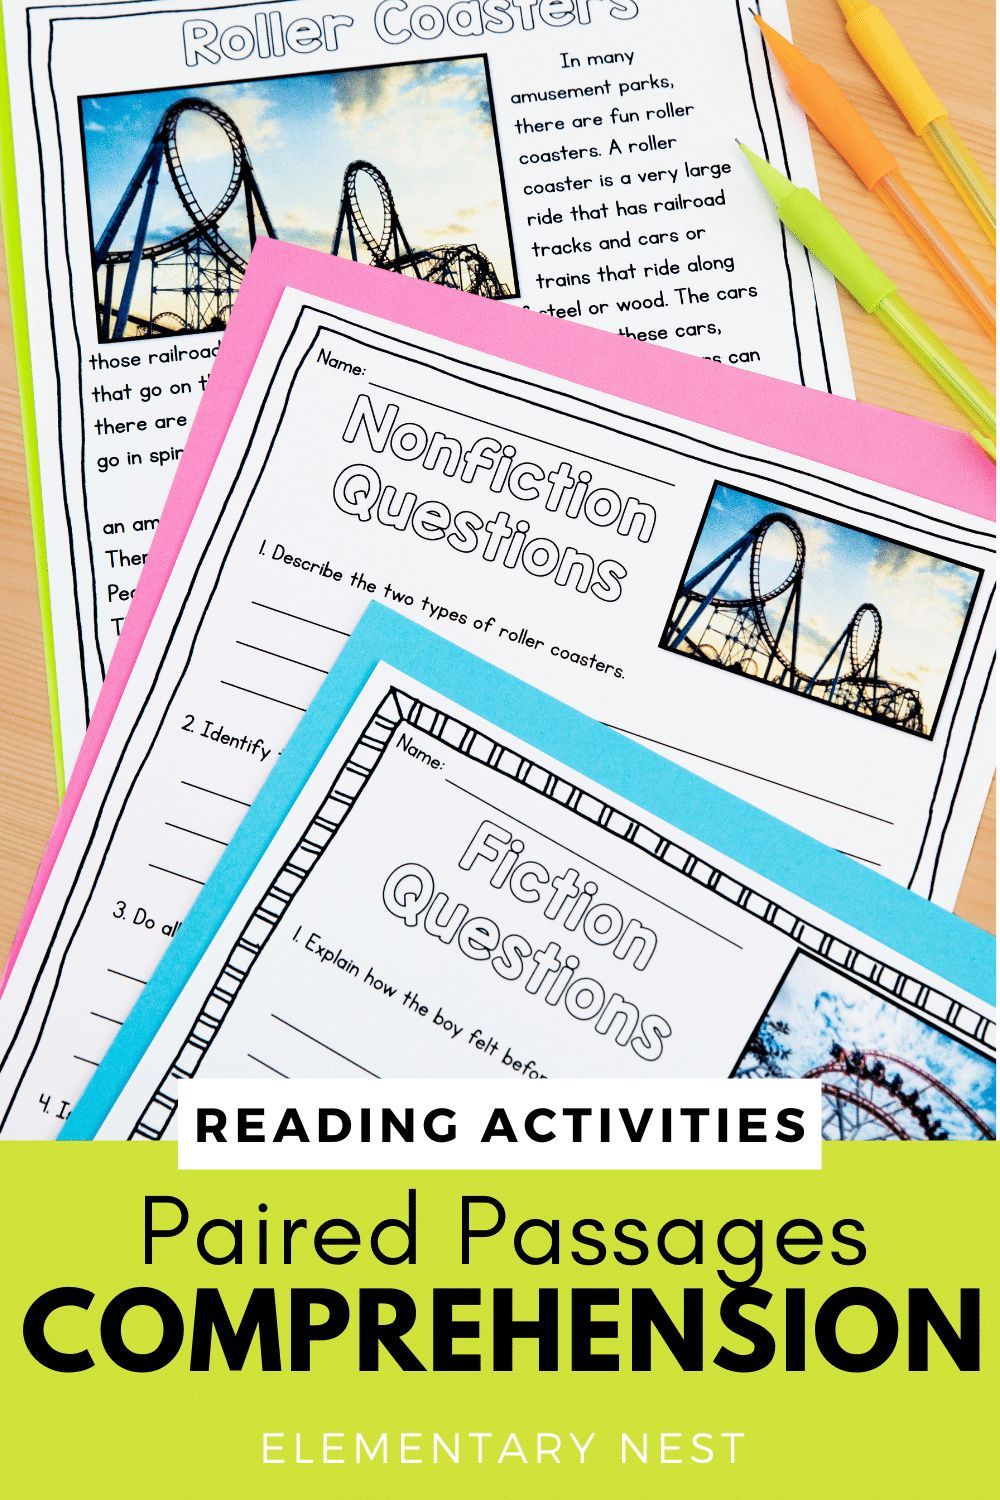 Paired Passages Comprehension Passages Digital With Google Slides Nonfiction Reading Activities Comprehension Passage Third Grade Activities [ 1500 x 1000 Pixel ]